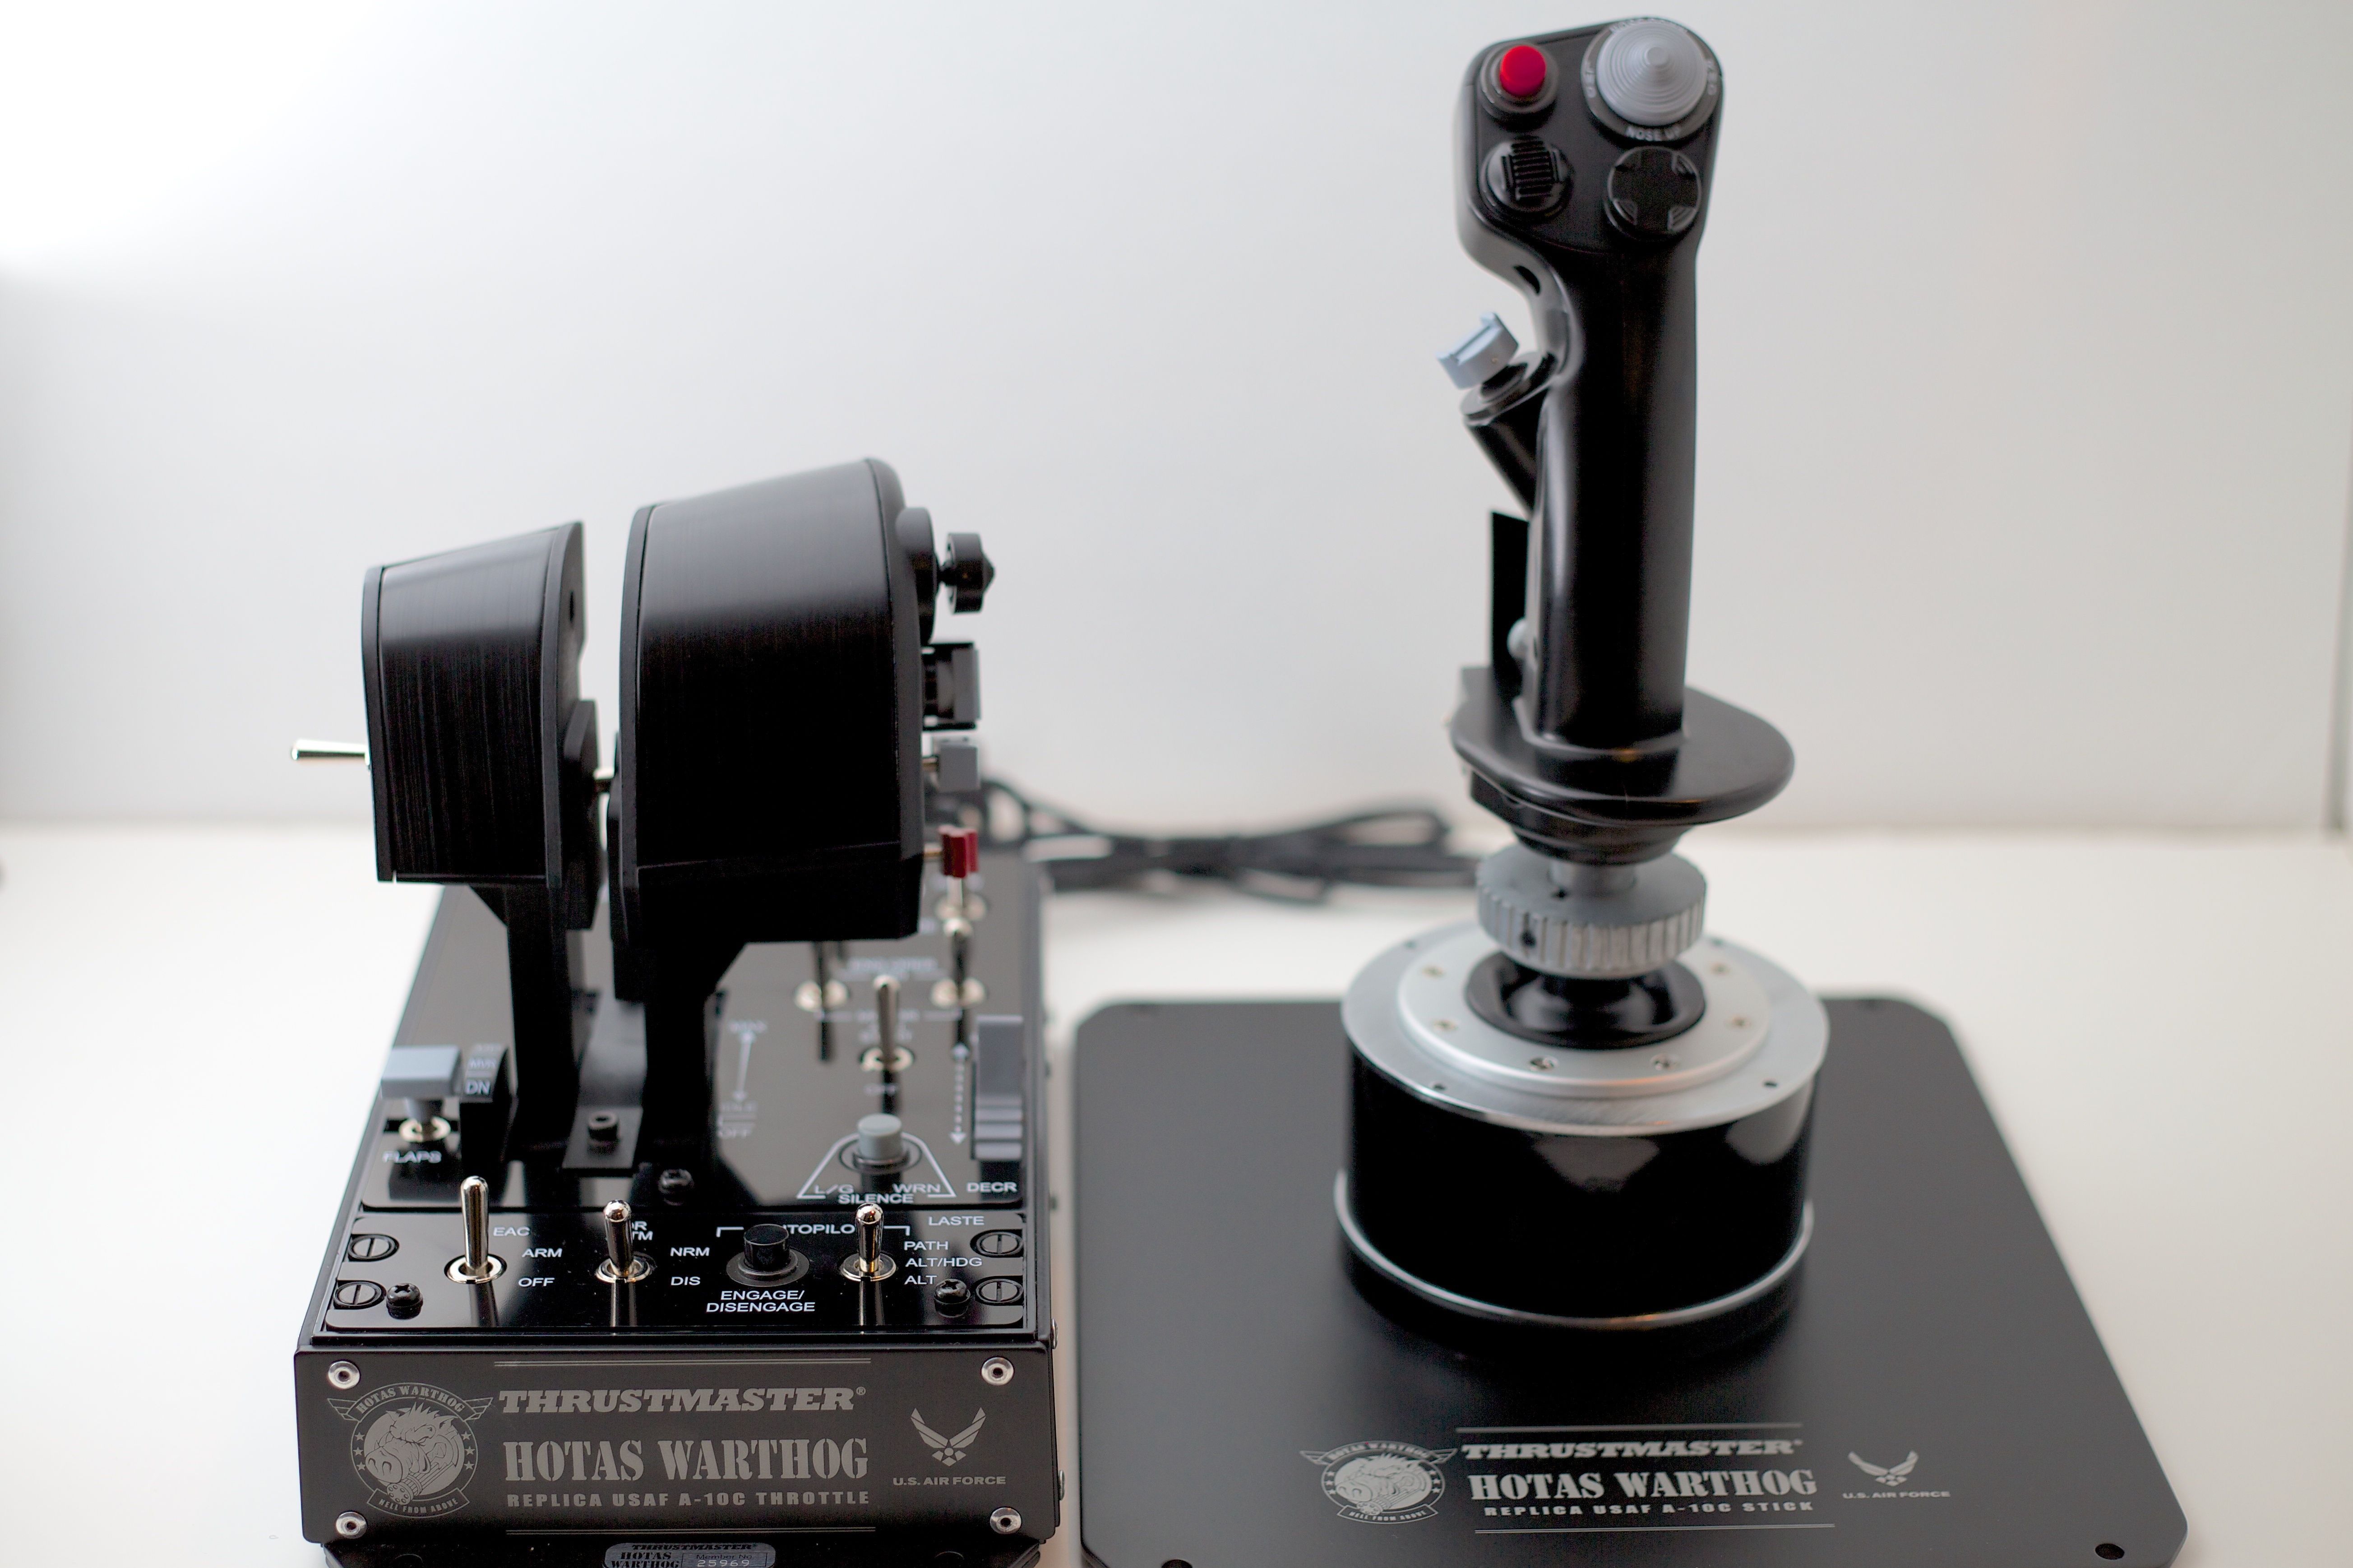 The Thrustmaster HOTAS Warthog.